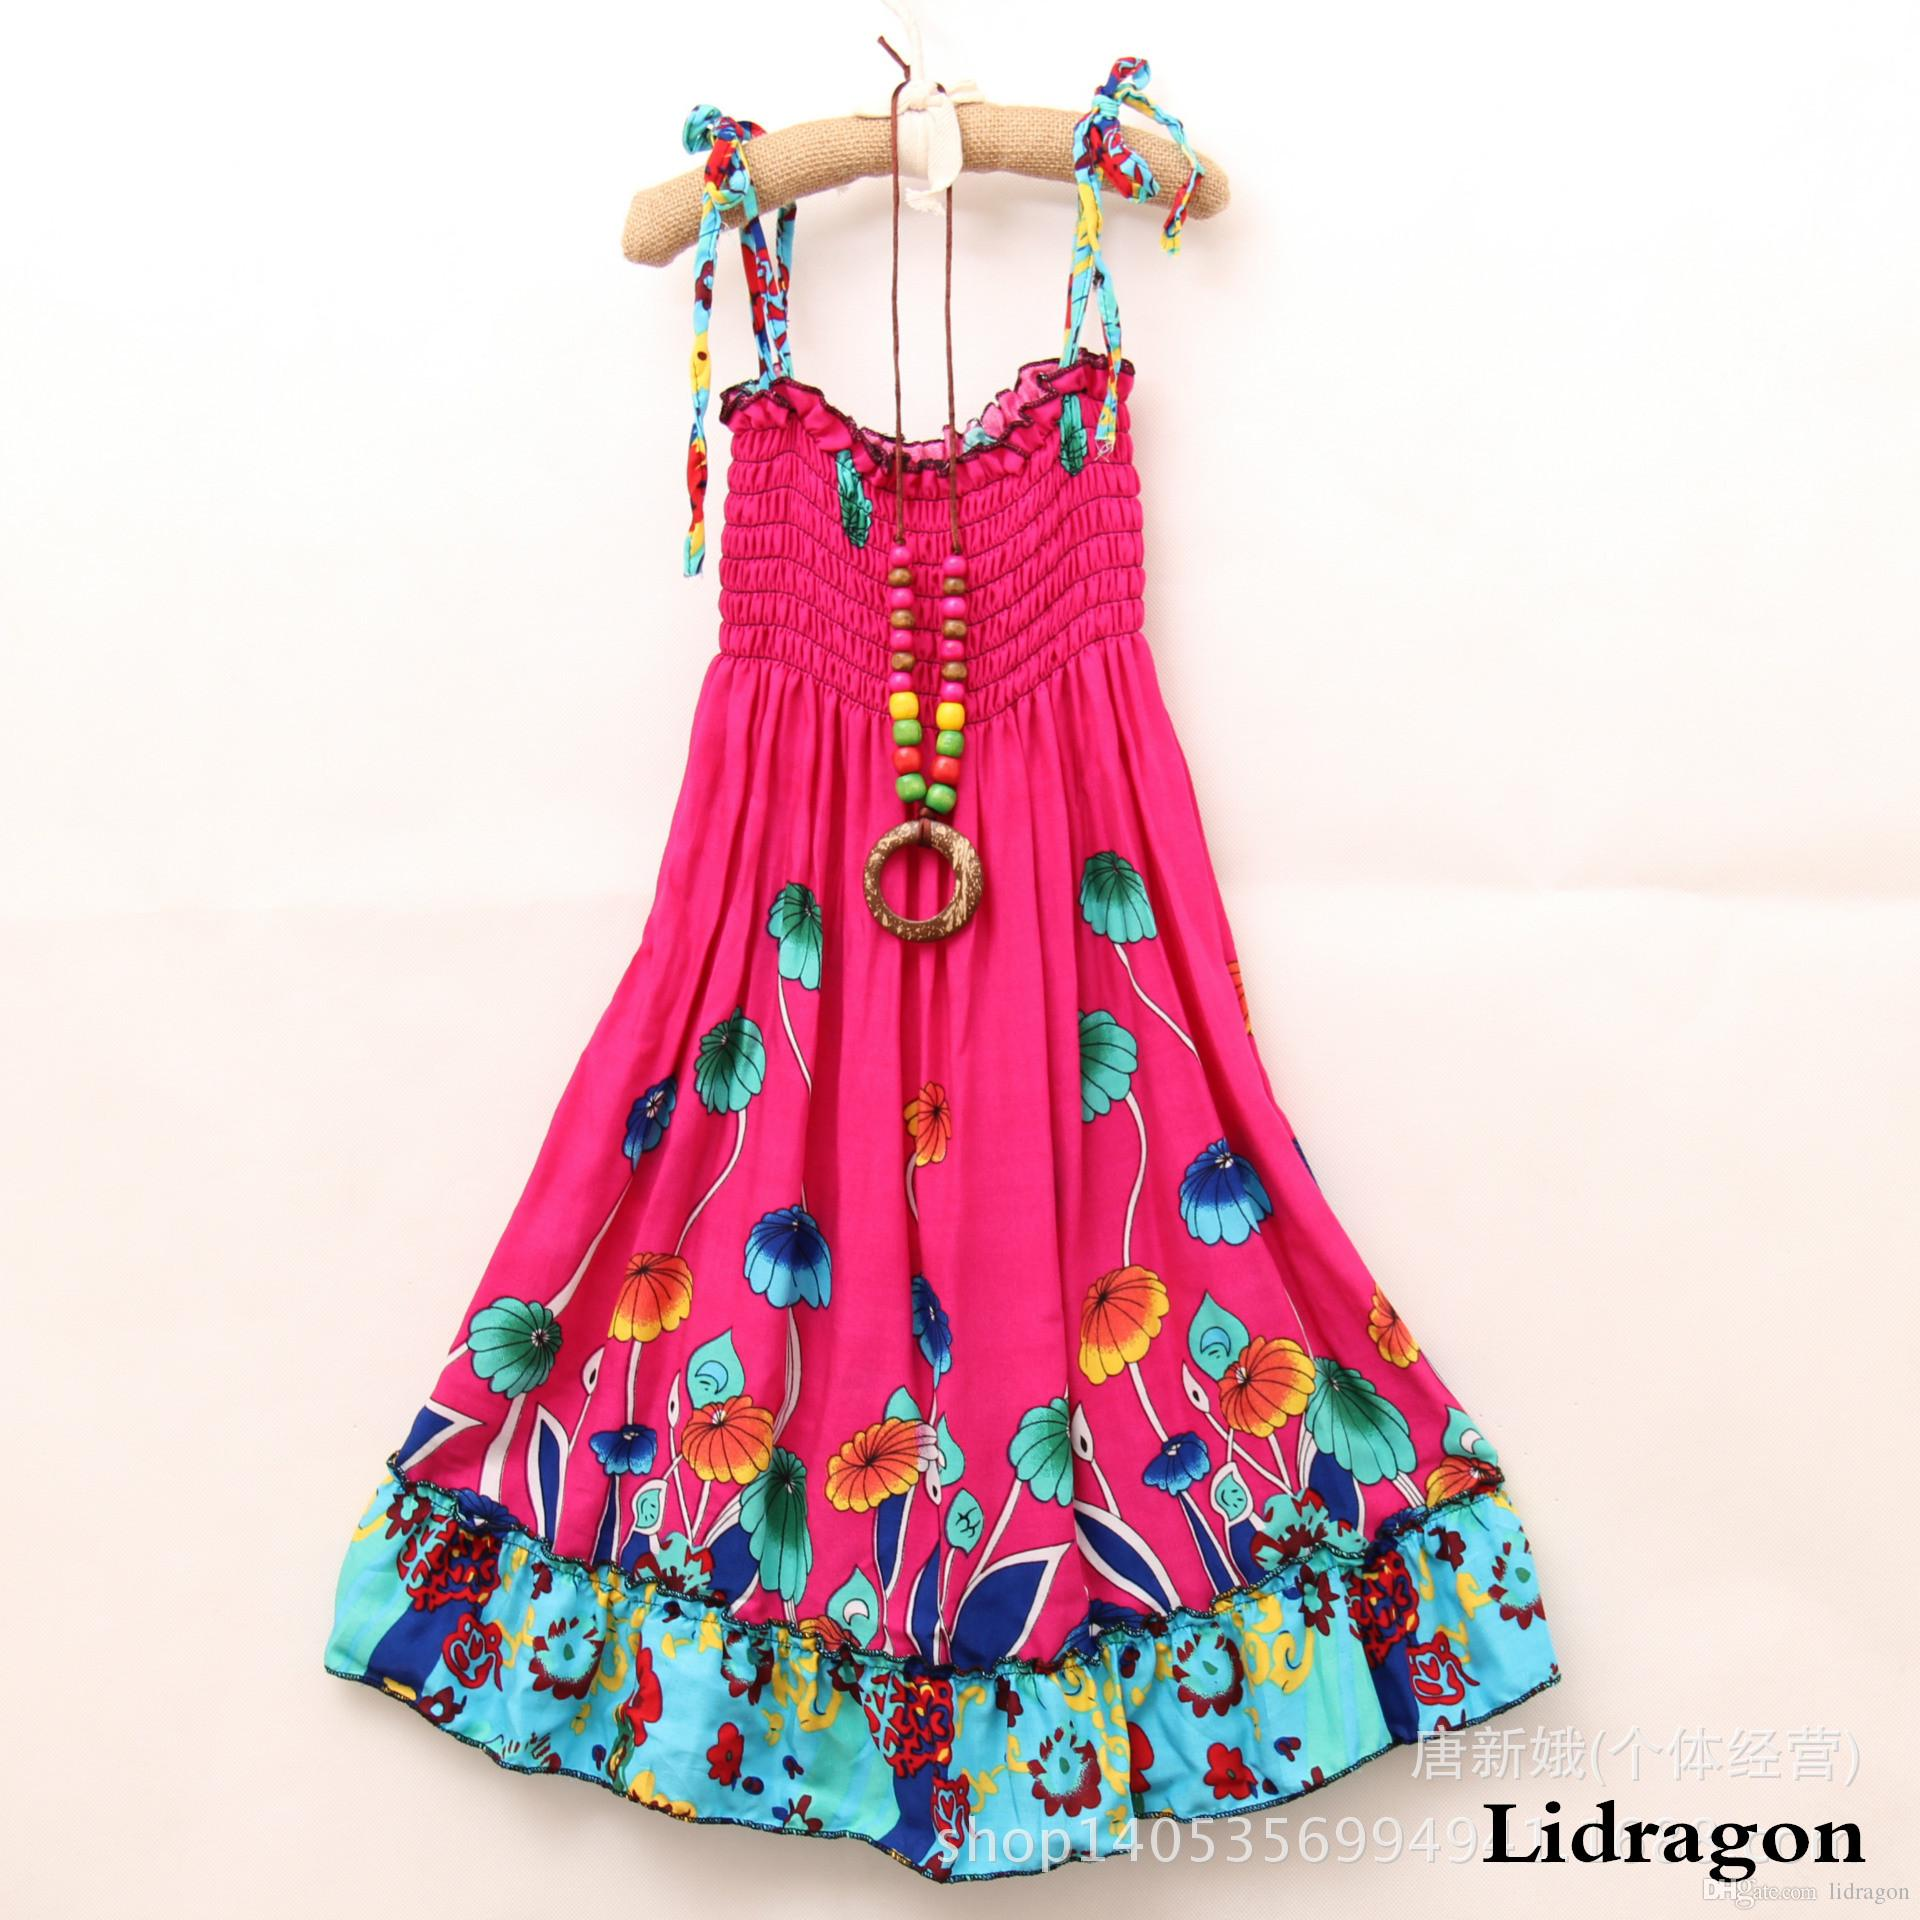 Find great deals on eBay for kids summer dresses. Shop with confidence.